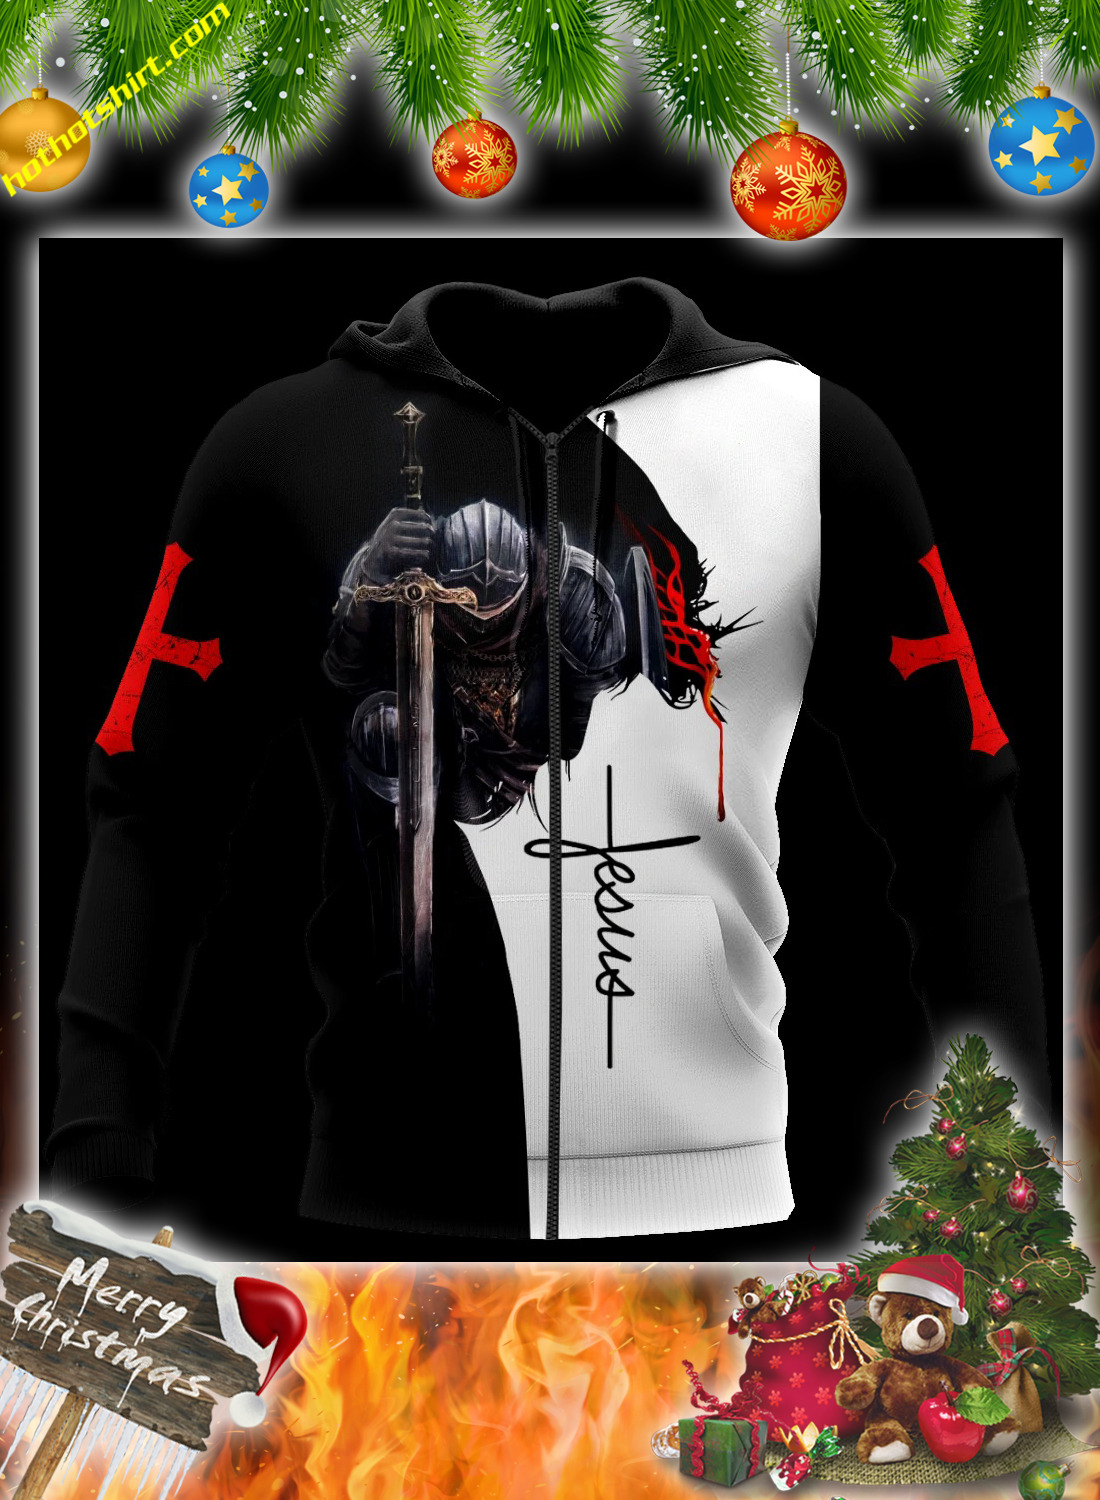 Jesus a child of god a man of faith a warrior of christ 3d all over printed hoodie 1